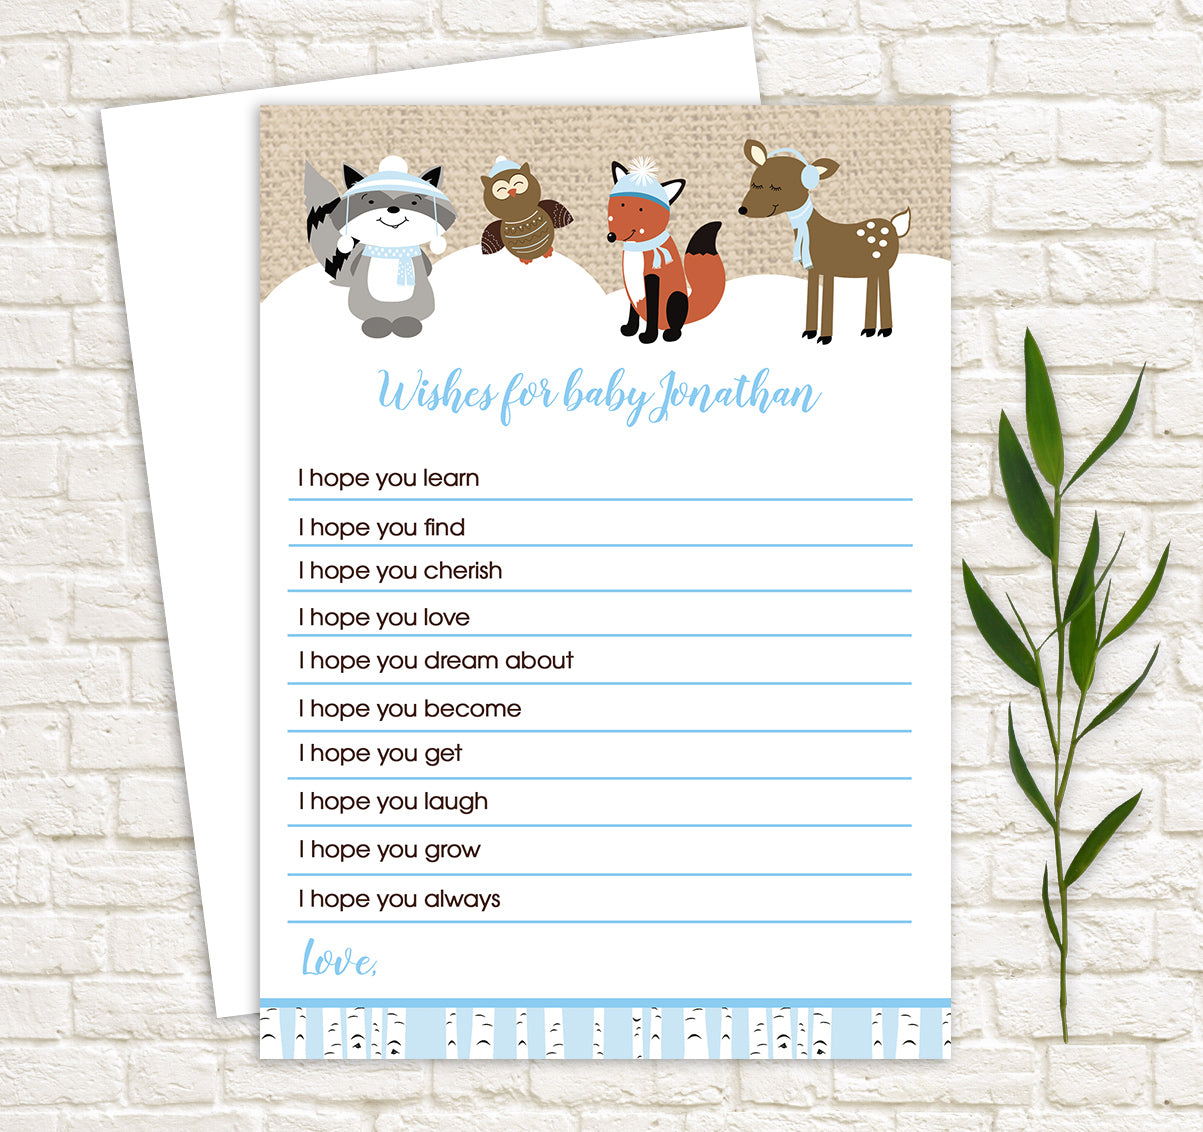 Winter Woodland Wishes for Baby Advice Cards